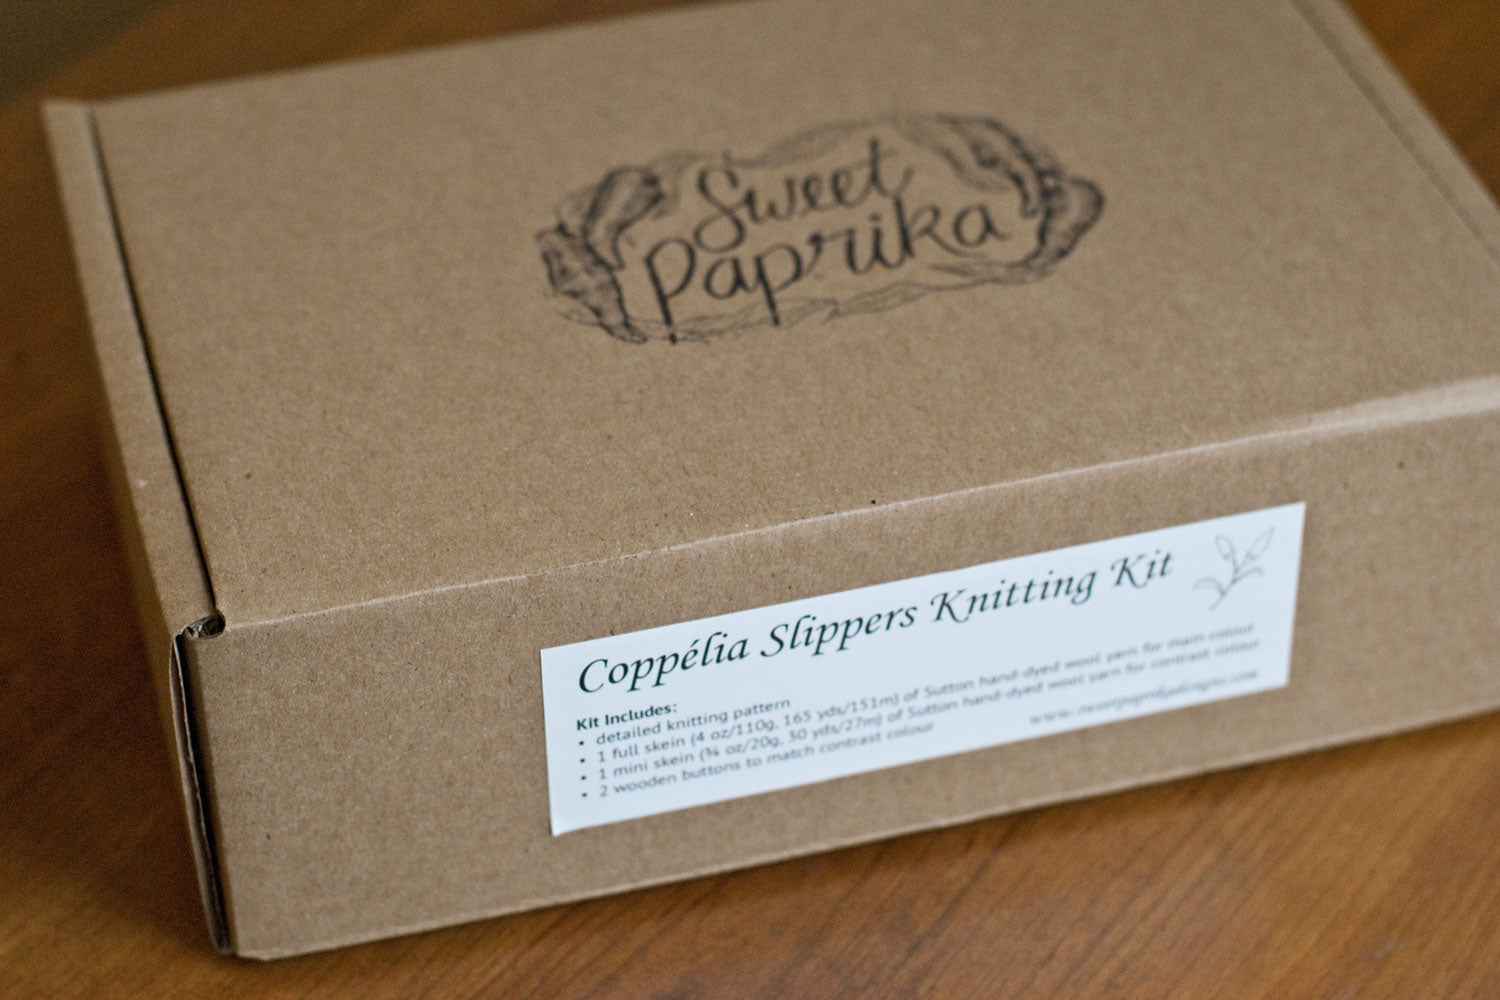 Cardboard box with sweet paprika stamp on top and slipper kit label on the side